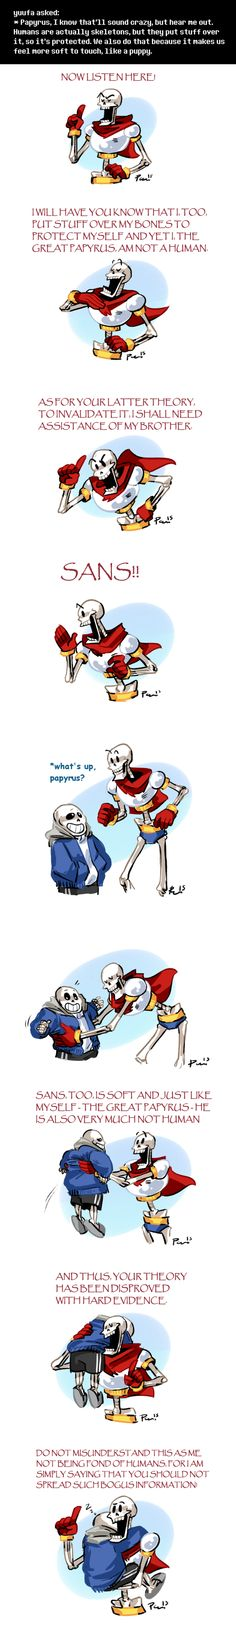 Undertale ask blog: MISINFORMATION ||| Sans and Papyrus ||| Undertale Fan Art by bPAVLICA on DeviantArt